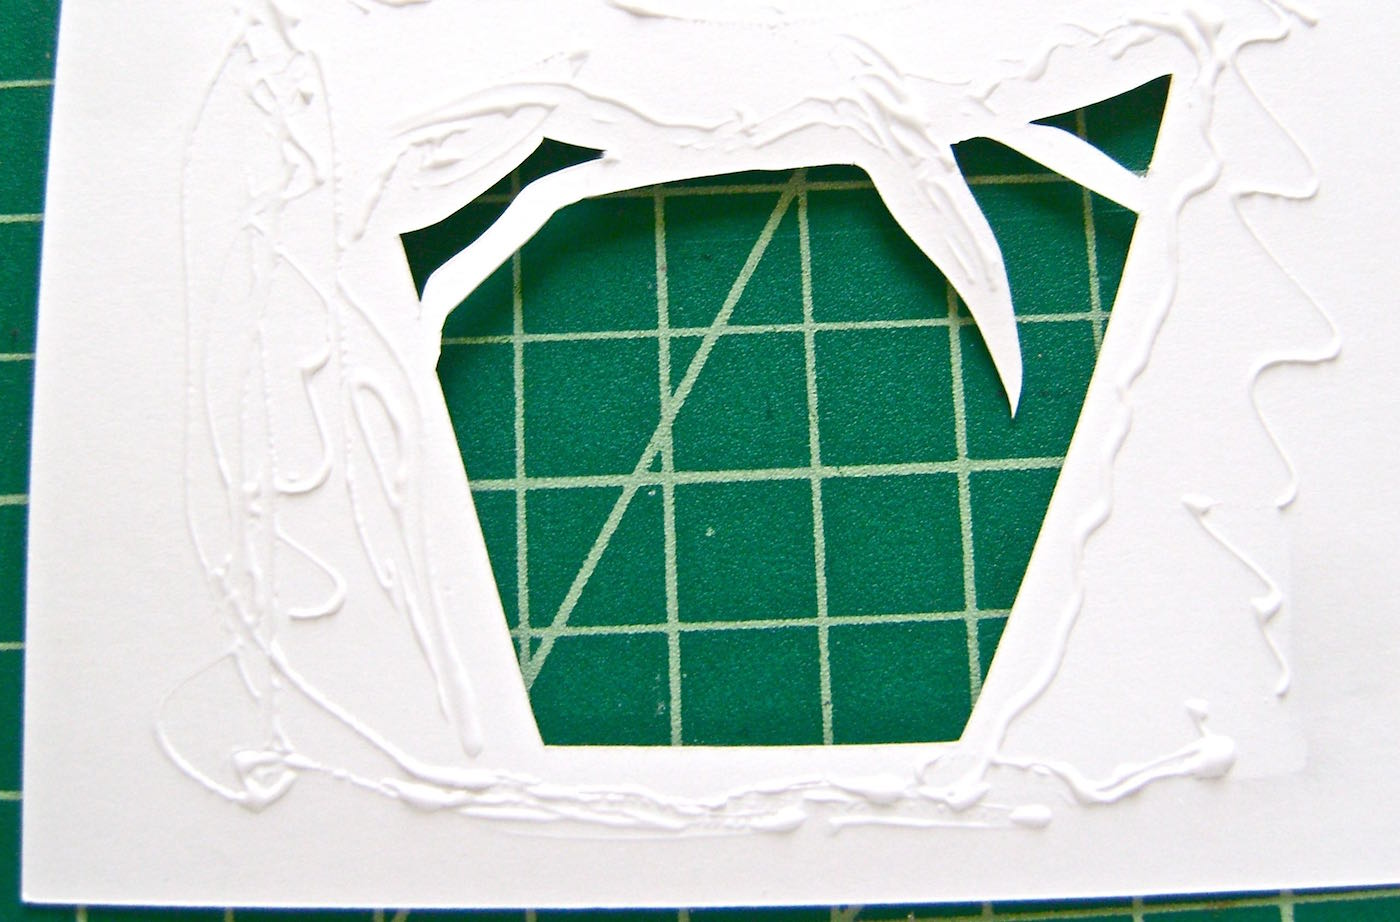 step 3 - Apply Aleene's Turbo Tacky glue to the wrong side the card front and close to the cut edges.  Press the foil to the glue.